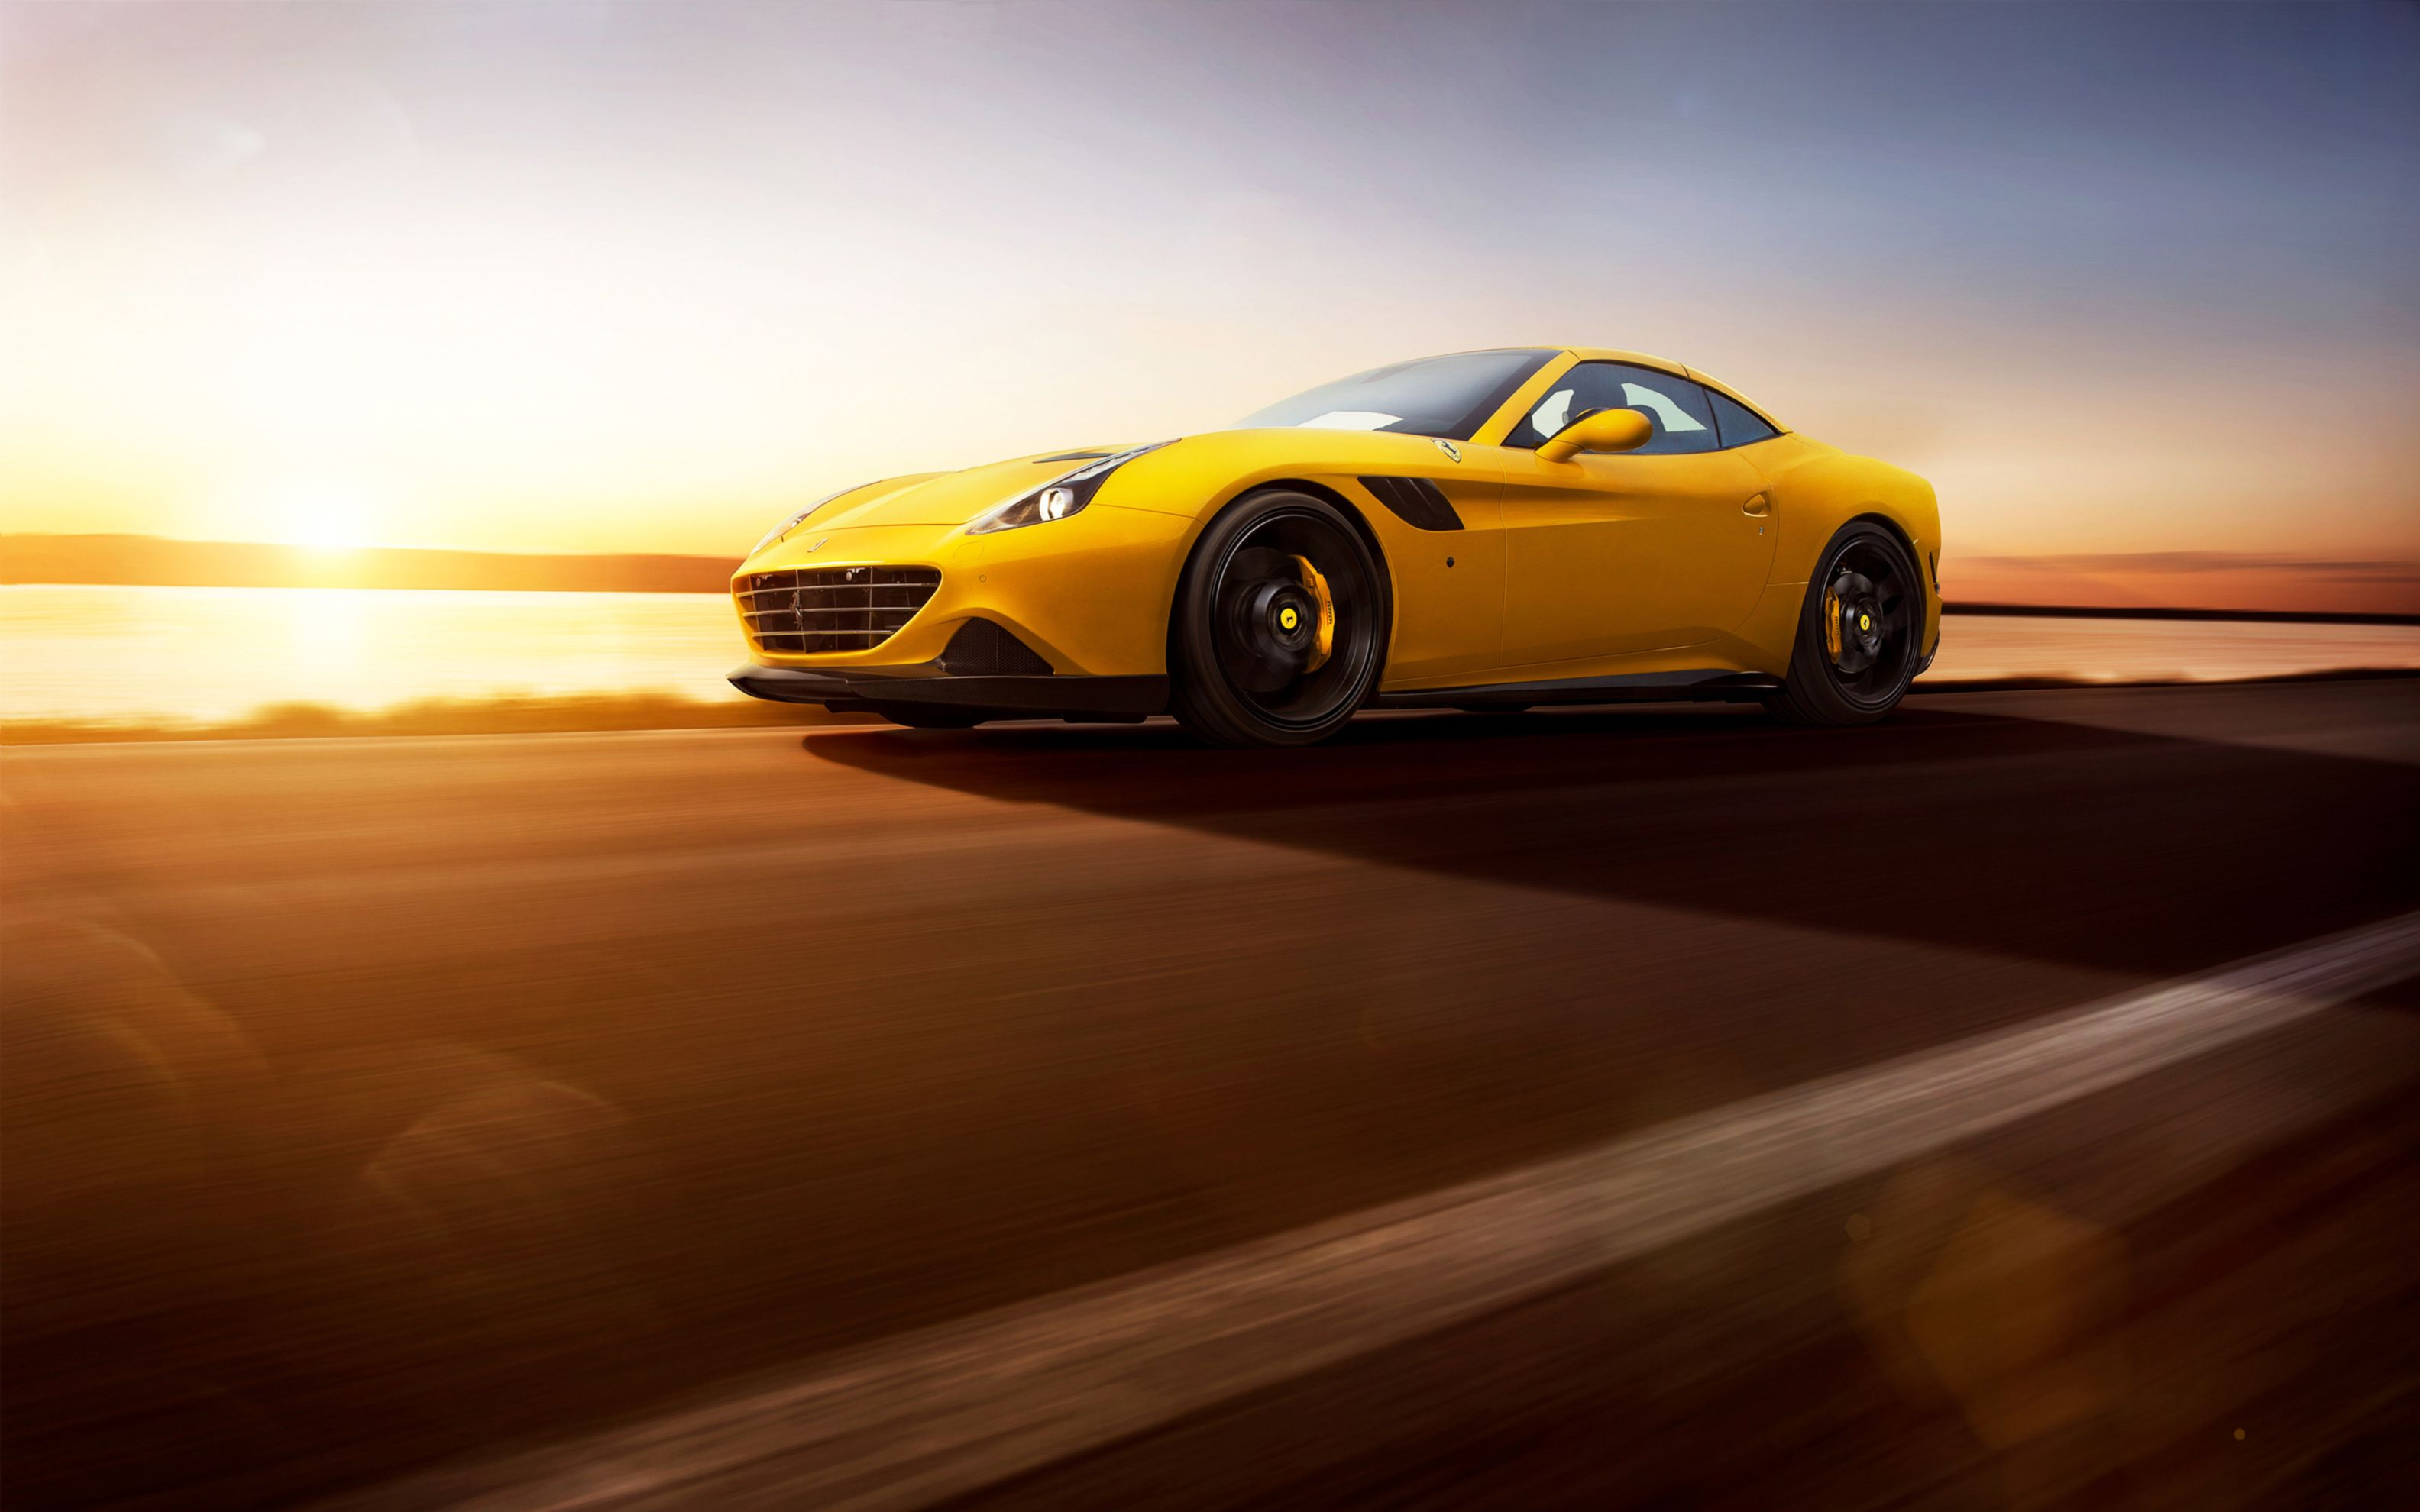 Download free HD 2015 Ferrari California T Wide Wallpaper, image